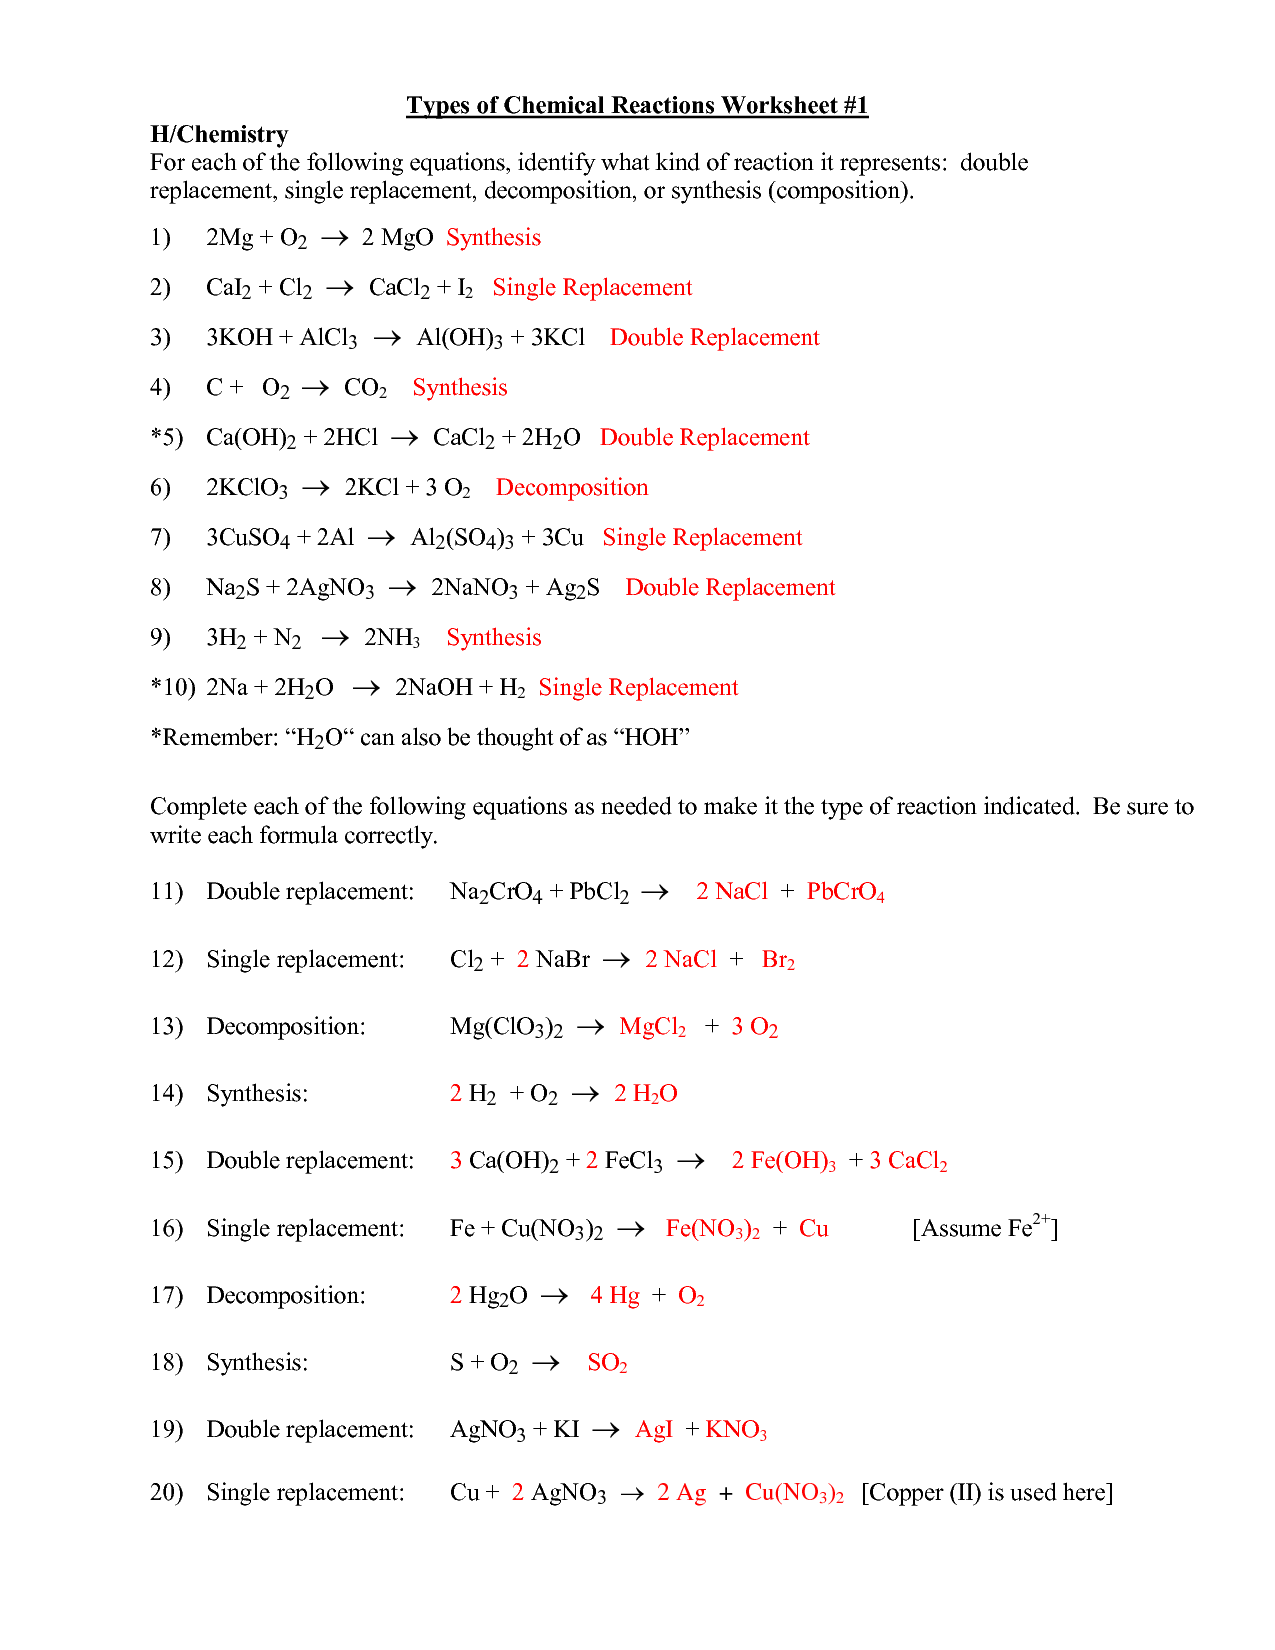 Types Of Chemical Reactions Worksheets Answer Key